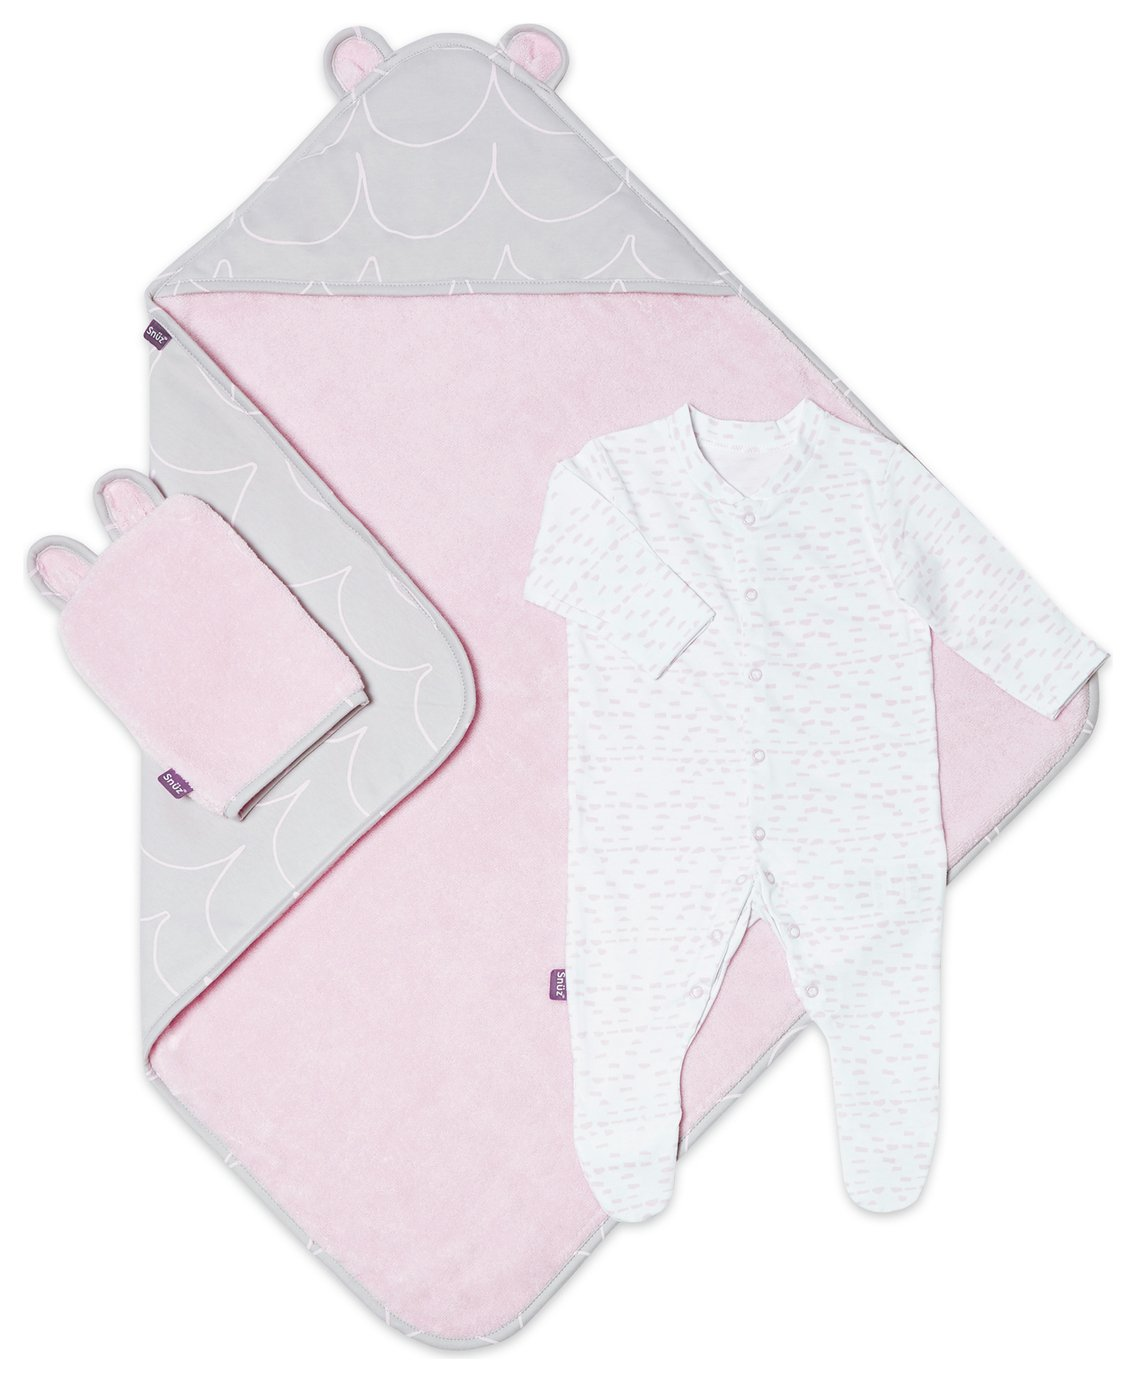 Snuz Baby Bath and Bed Set - Rose Wave